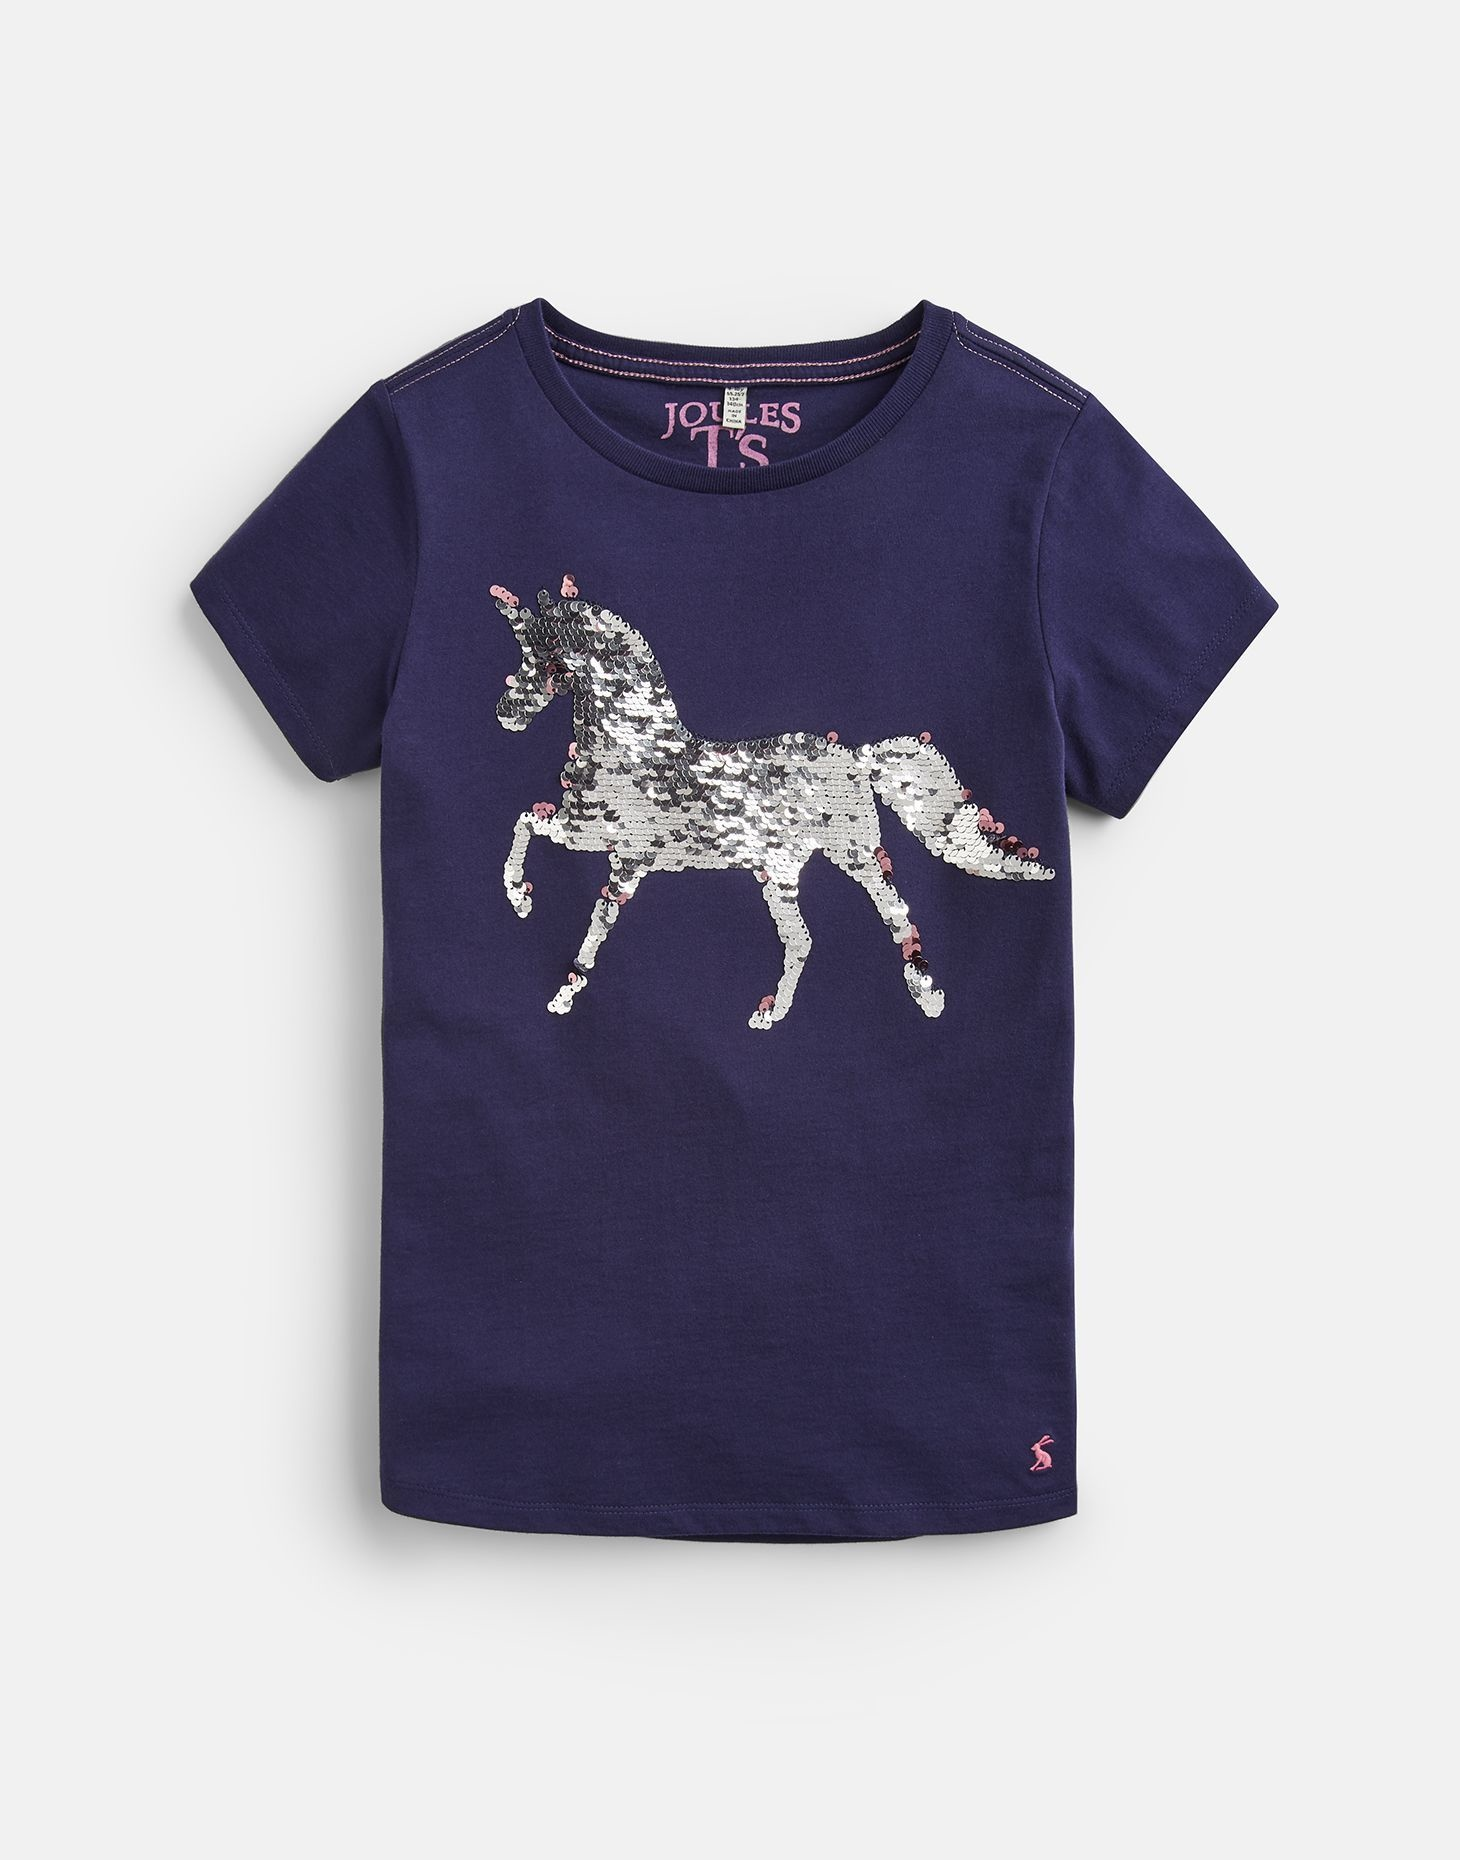 Joules Astra Shirt Navy Sequin Horse